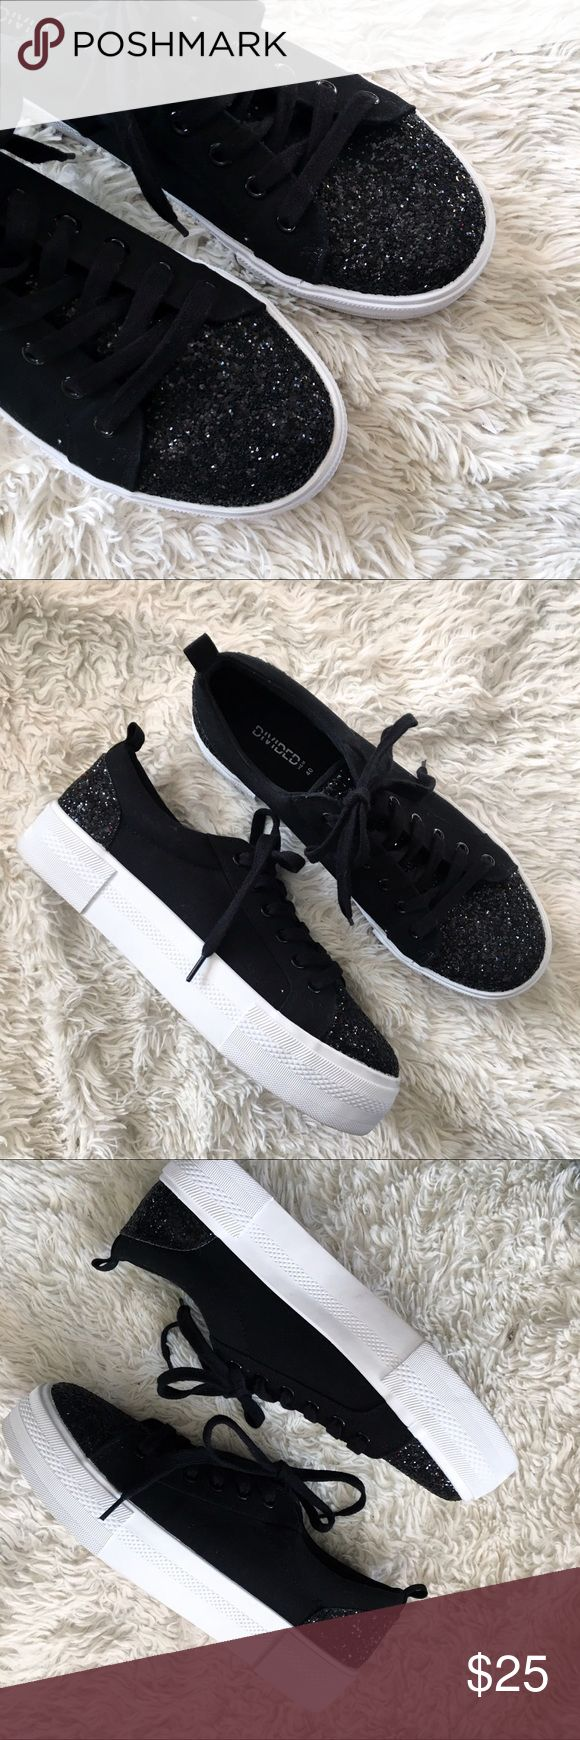 H&M Platform Glitter Sneakers Glitter Platform Tennis Shoes. I'm almost positive these are NWOT. Excellent Condition. Divided (H&M Brand). ✨OFFERS WELCOME✨ H&M Shoes Sneakers